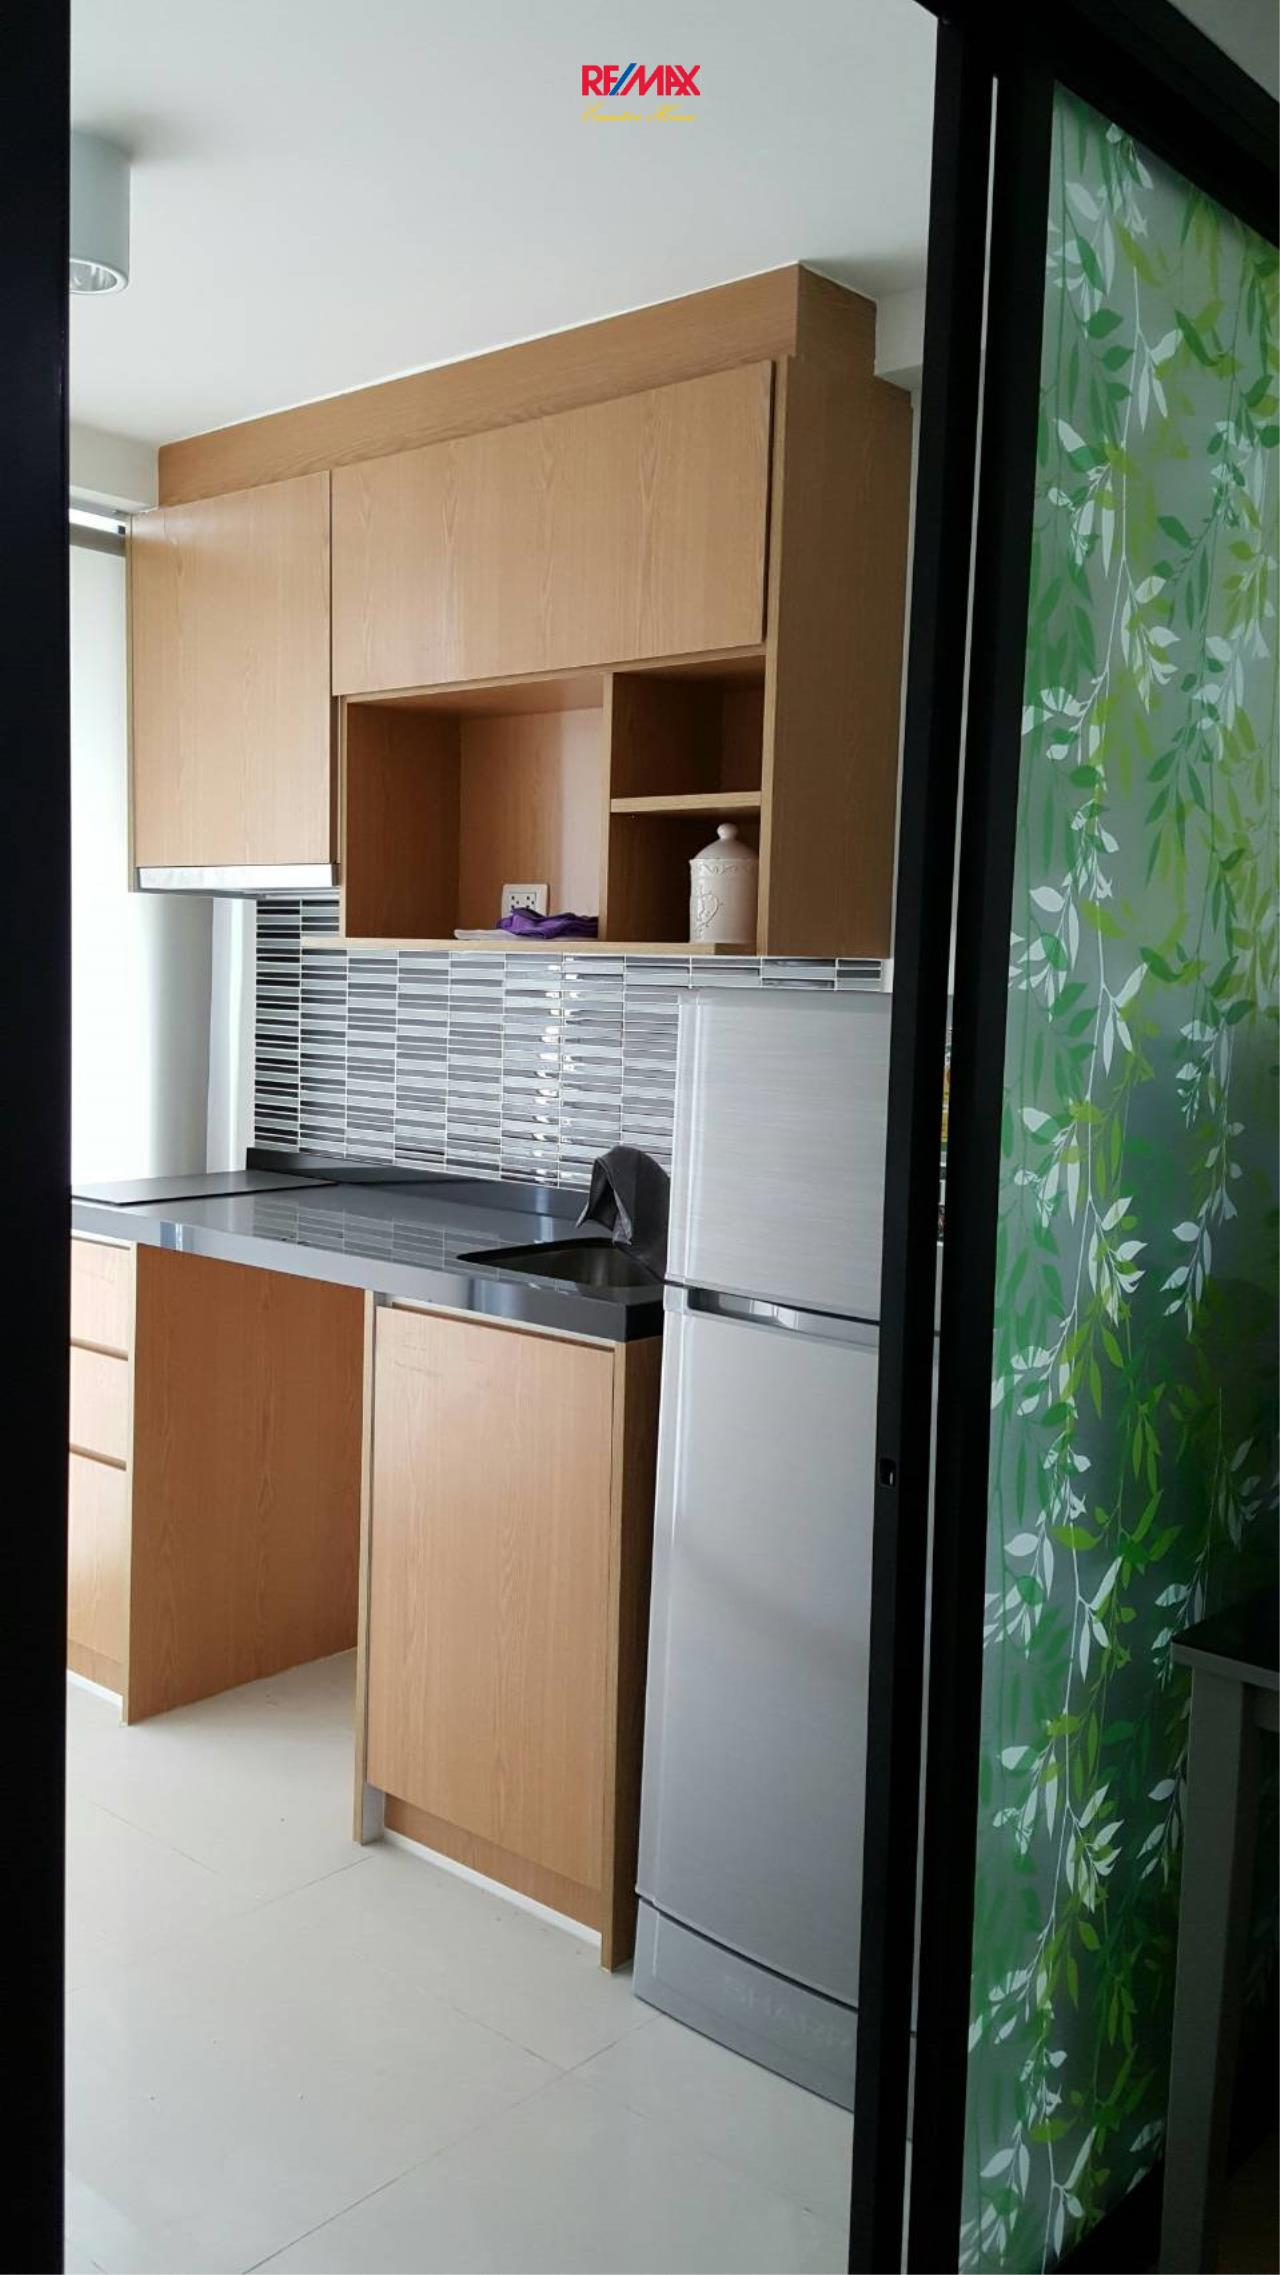 RE/MAX Executive Homes Agency's Nice 1 Bedroom for Rent and Sale Bangkok Feliz 69 11